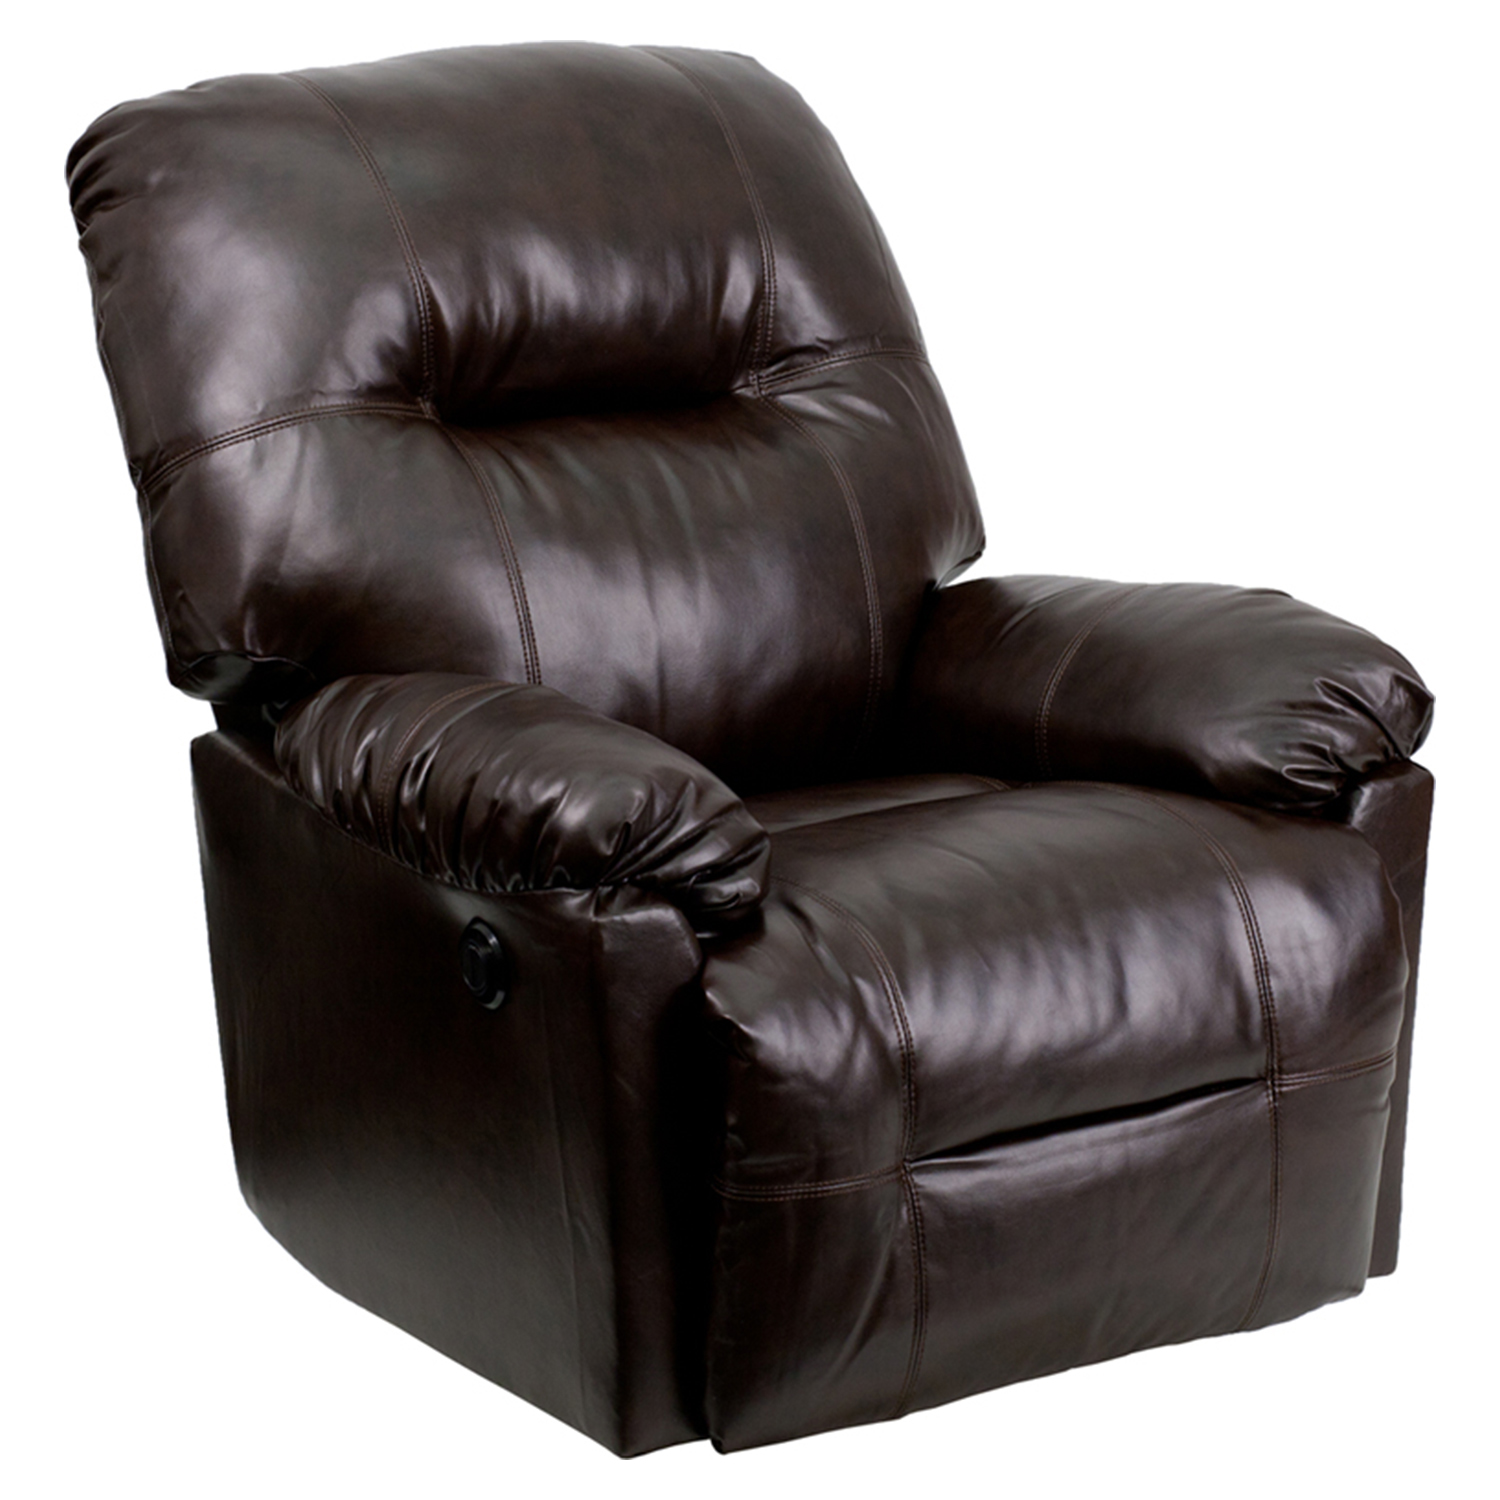 Leather Rocking Chair Bentley Leather Rocker Chair Recliner Brown